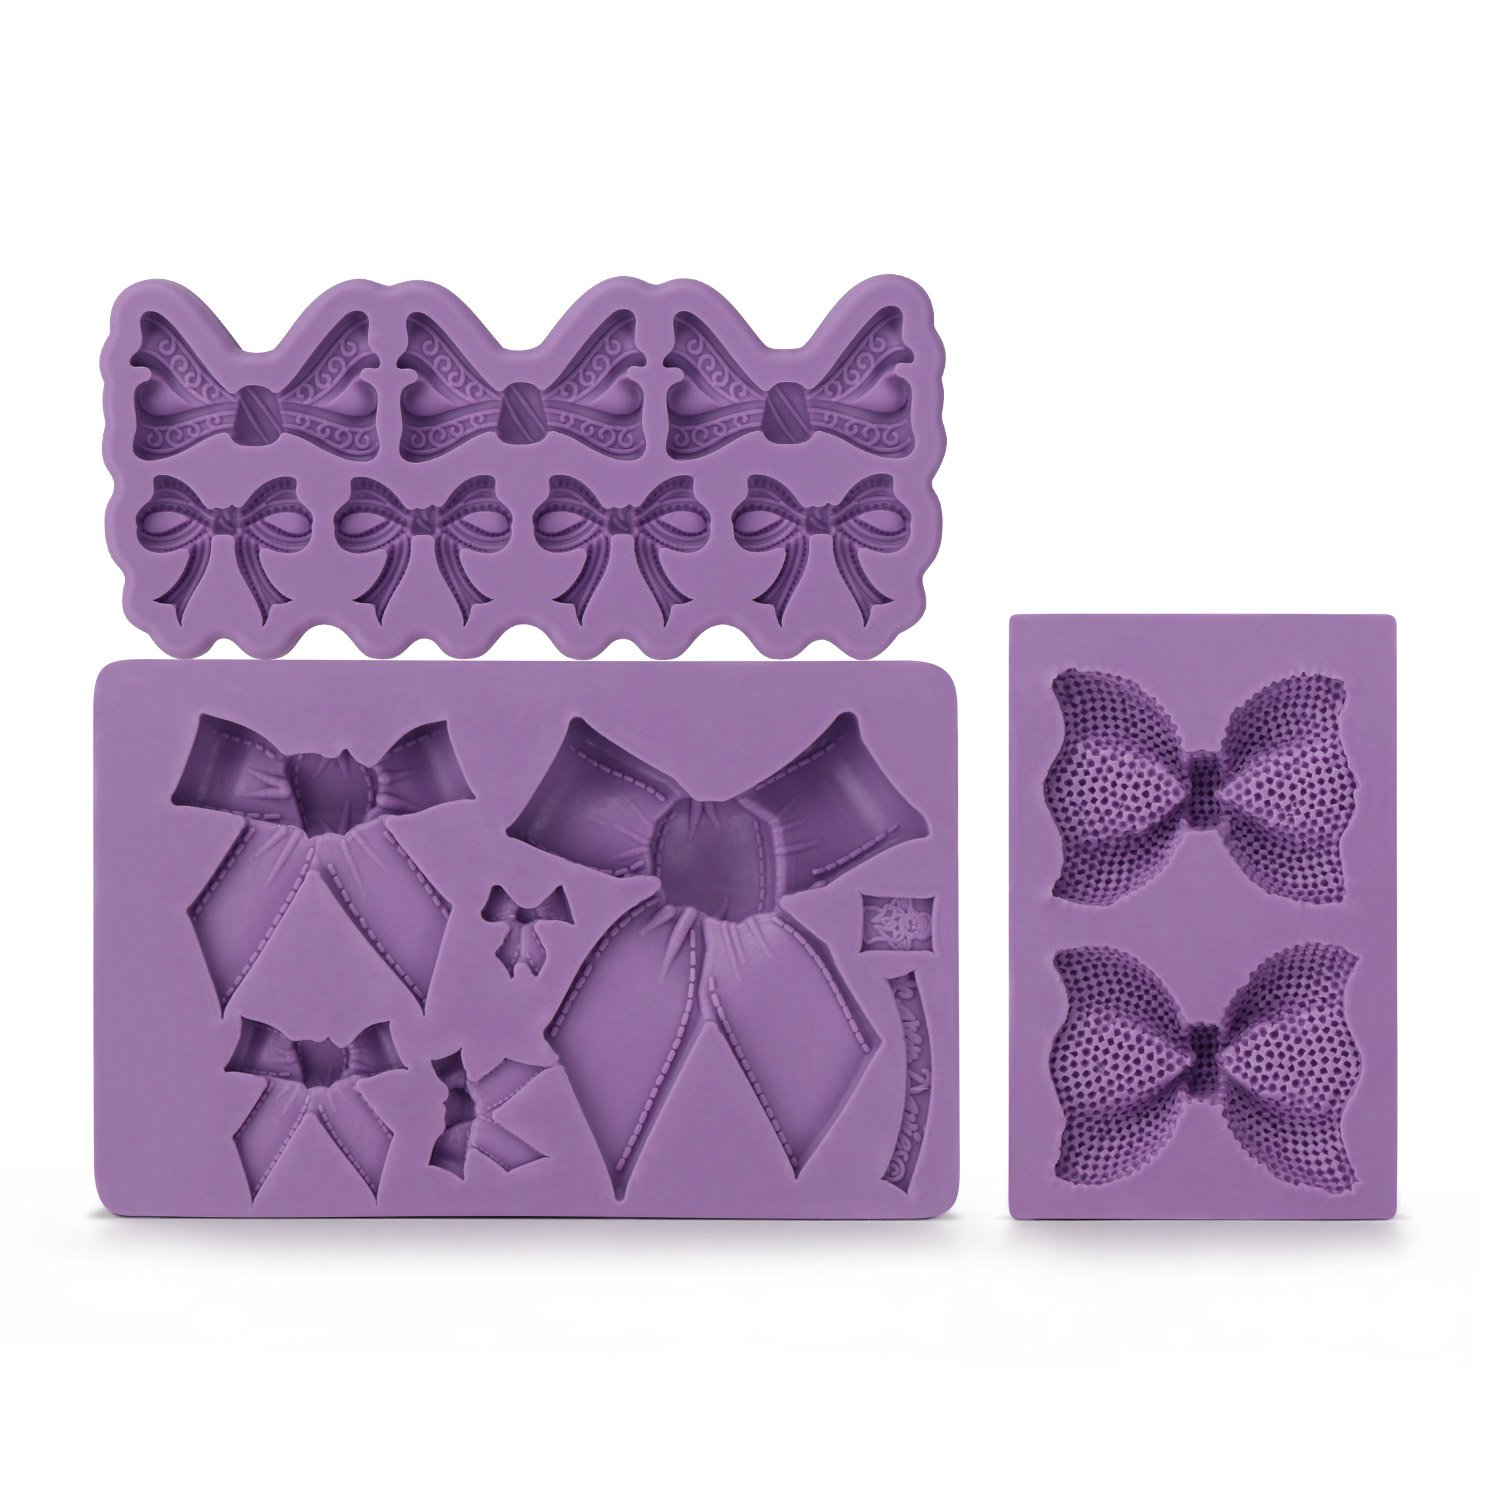 Bow Fondant Mold, Beasea 3pcs Candy Sugar Craft Fondant DIY Gumpaste Cake Decoration Cupcake Decorating Toppers Clay Purple